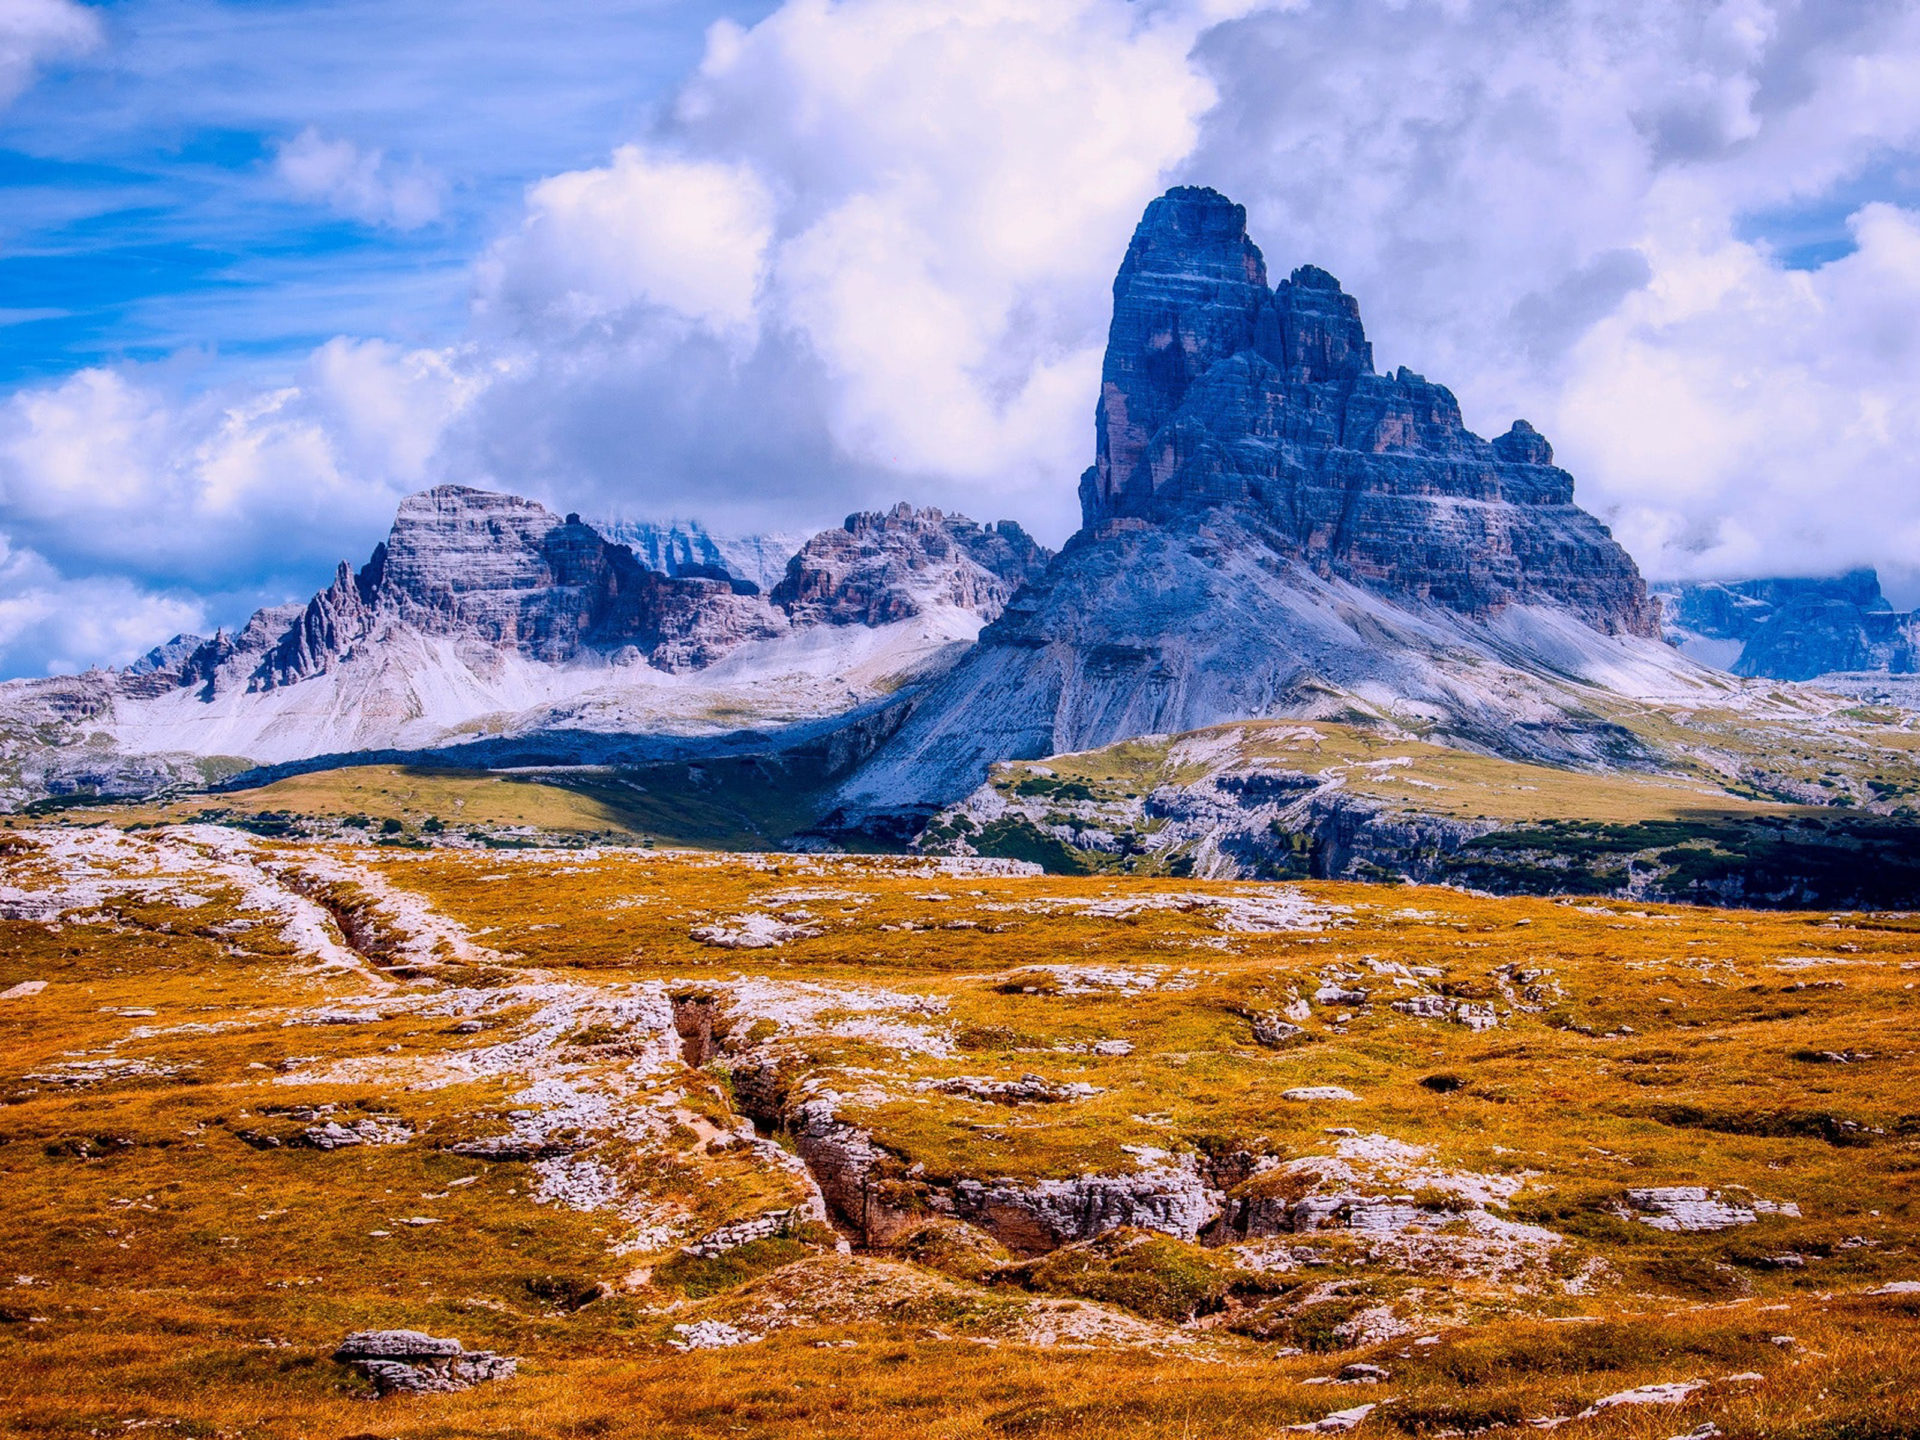 Fall Winter Wallpaper Free Landscape Photography Italy Dolomites South Tyrol Winter